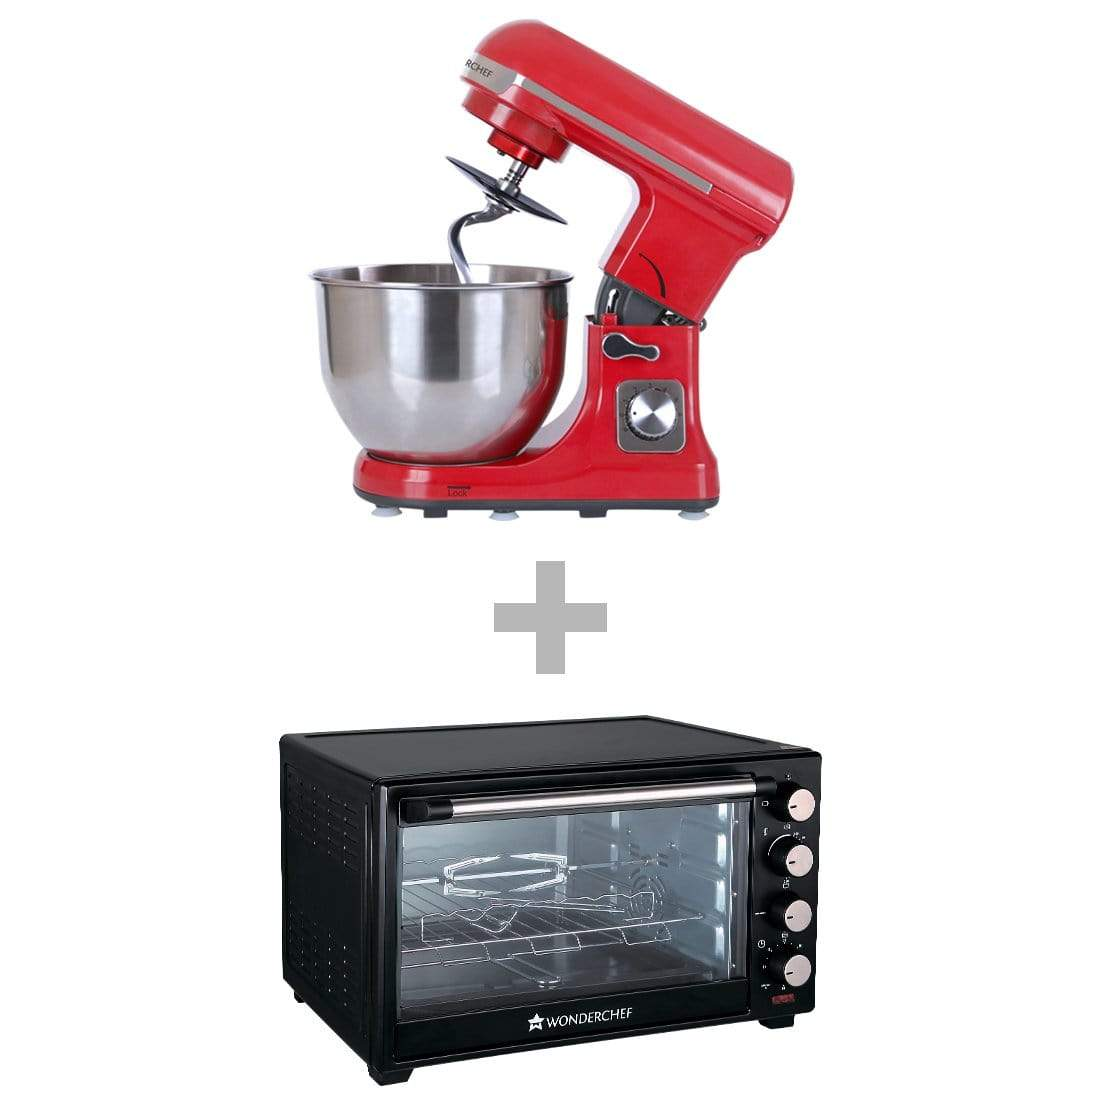 Wonderchef Stand Mixer Red + Oven Toaster Griller Otg 28L